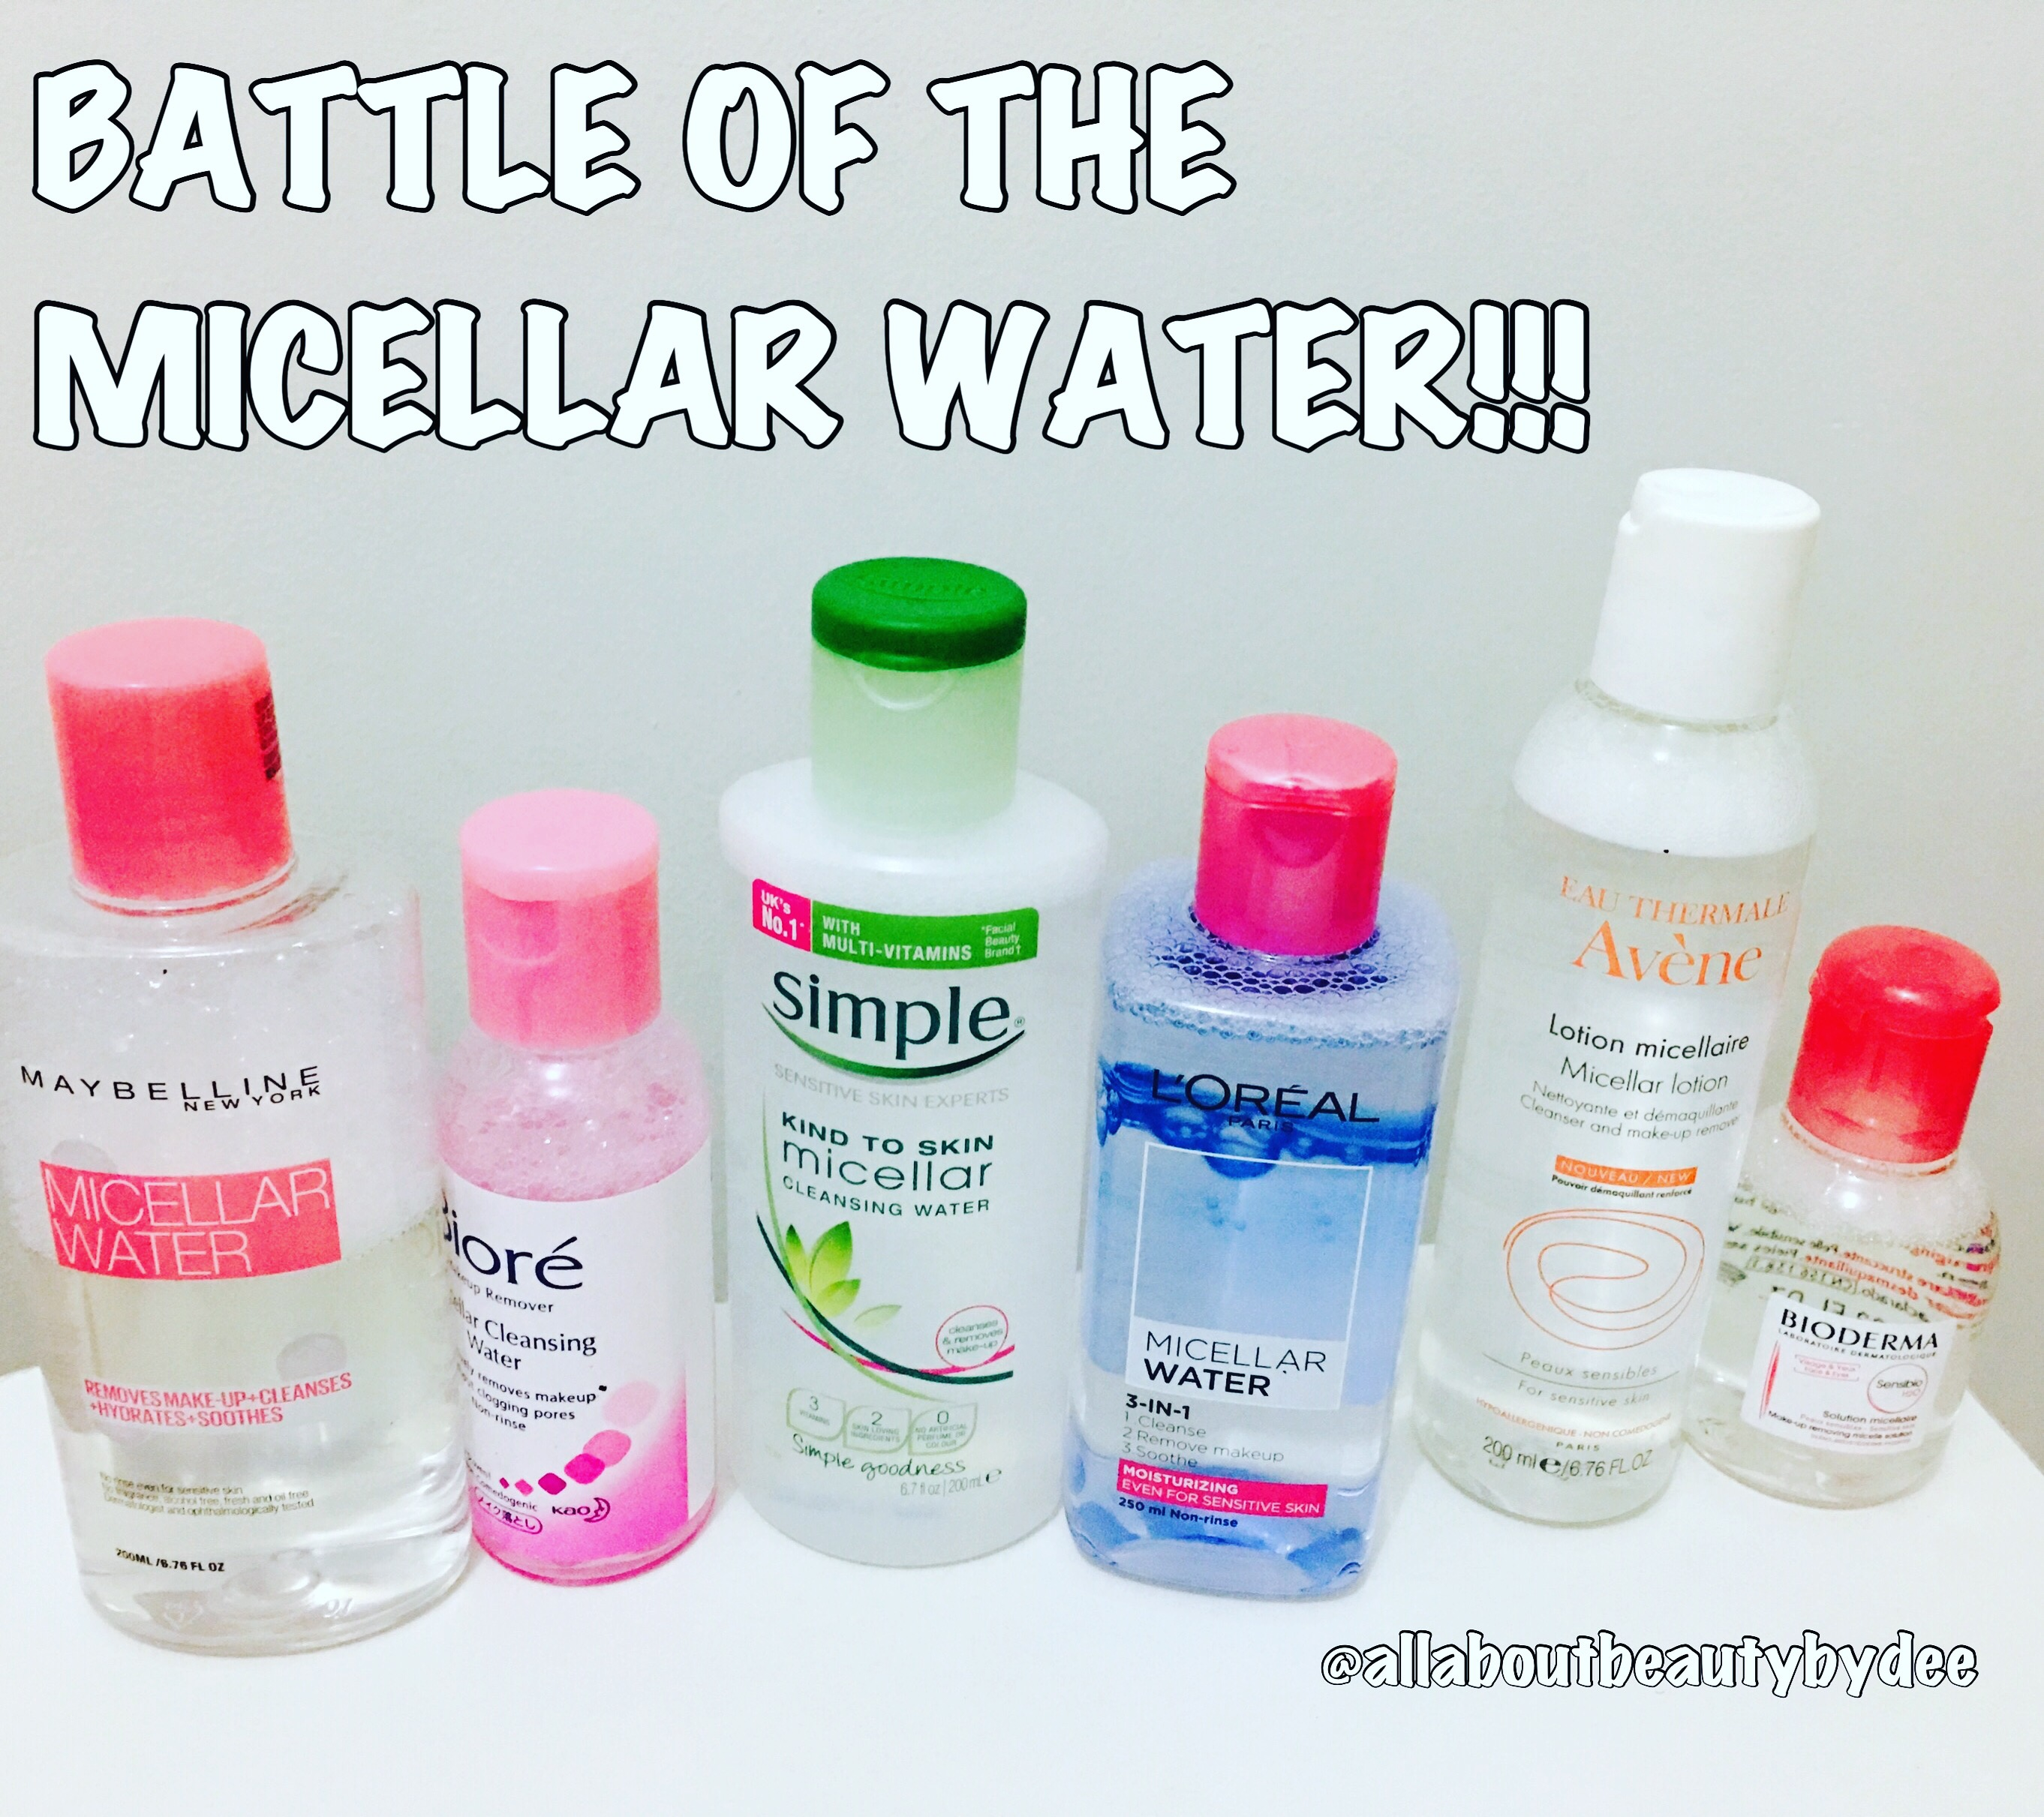 The Ultimate Battle Of Micellar Water L Oreal Makeup 250ml Blue I Have Never Heard This Term Before Day Maybelline Launched Their In Philippines Didnt Even Know It Existed